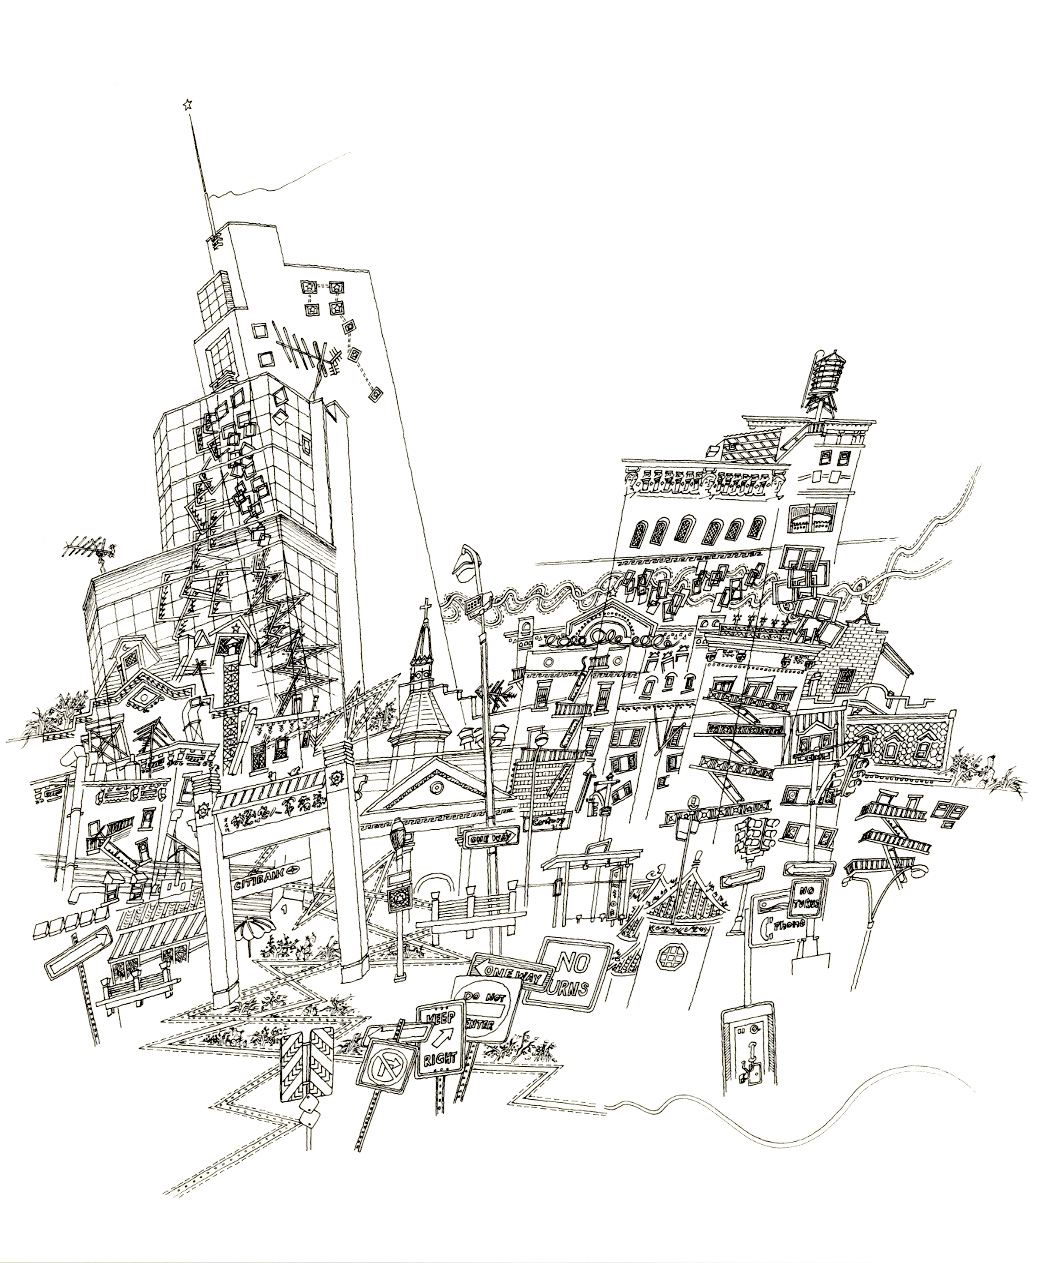 New York 紐約 ( 1999 ) line drawing on paperWork Anniversary Images